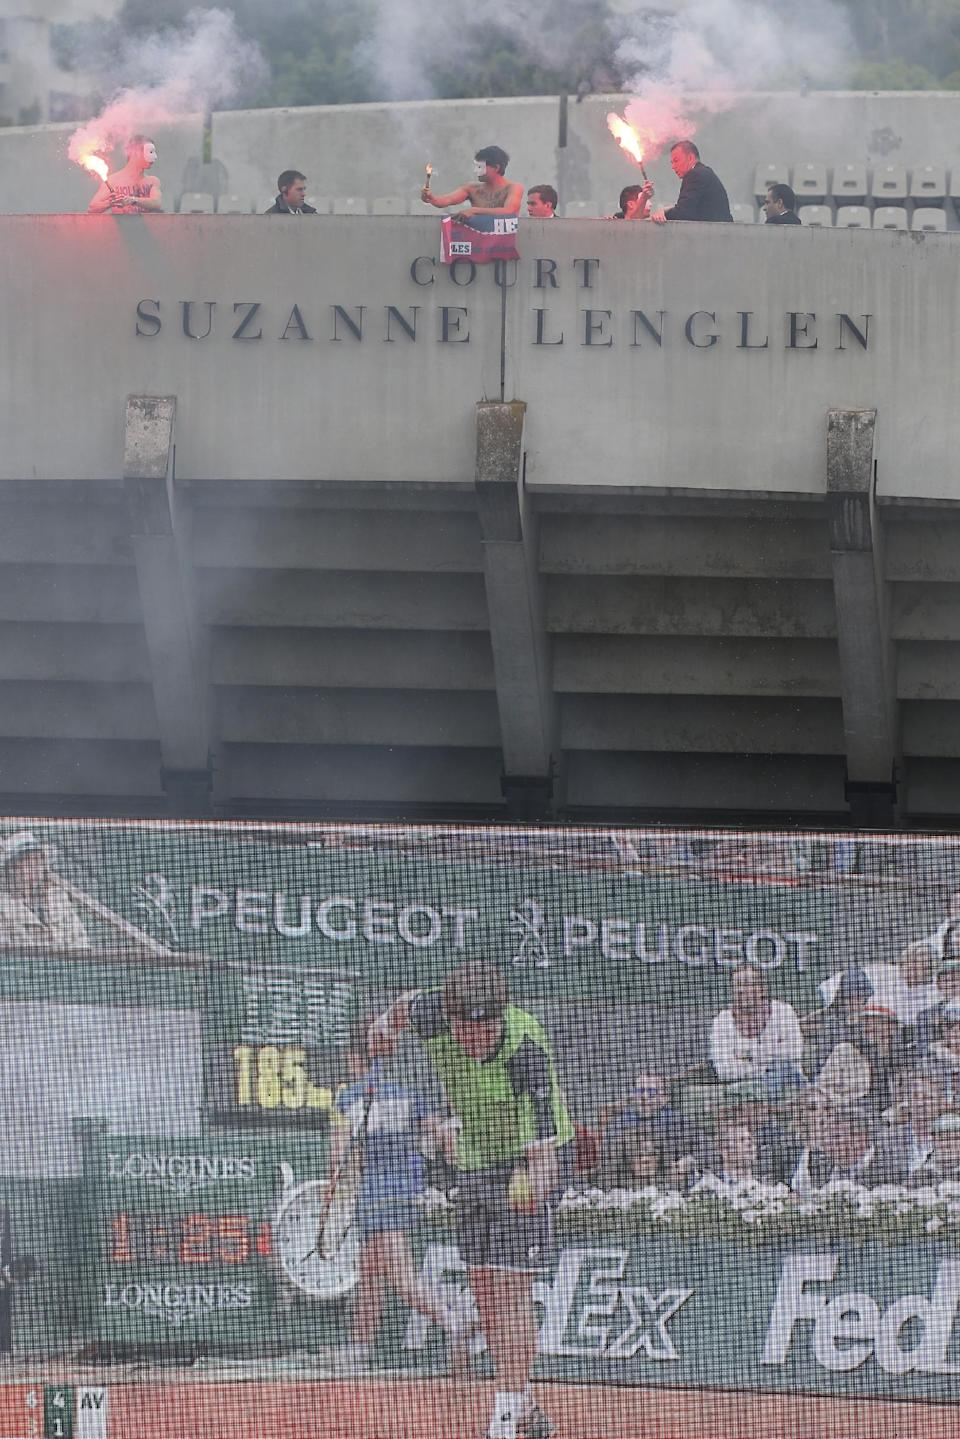 Security officiers remove demonstrators display a banner demanding the resignation of French President  Francois Hollande, atop Suzanne Lenglen court, as Spain's Rafael Nadal plays compatriot David Ferrer on center court during the men's final match of the French Open tennis tournament at the Roland Garros stadium Sunday, June 9, 2013 in Paris. (AP Photo/David Vincent)